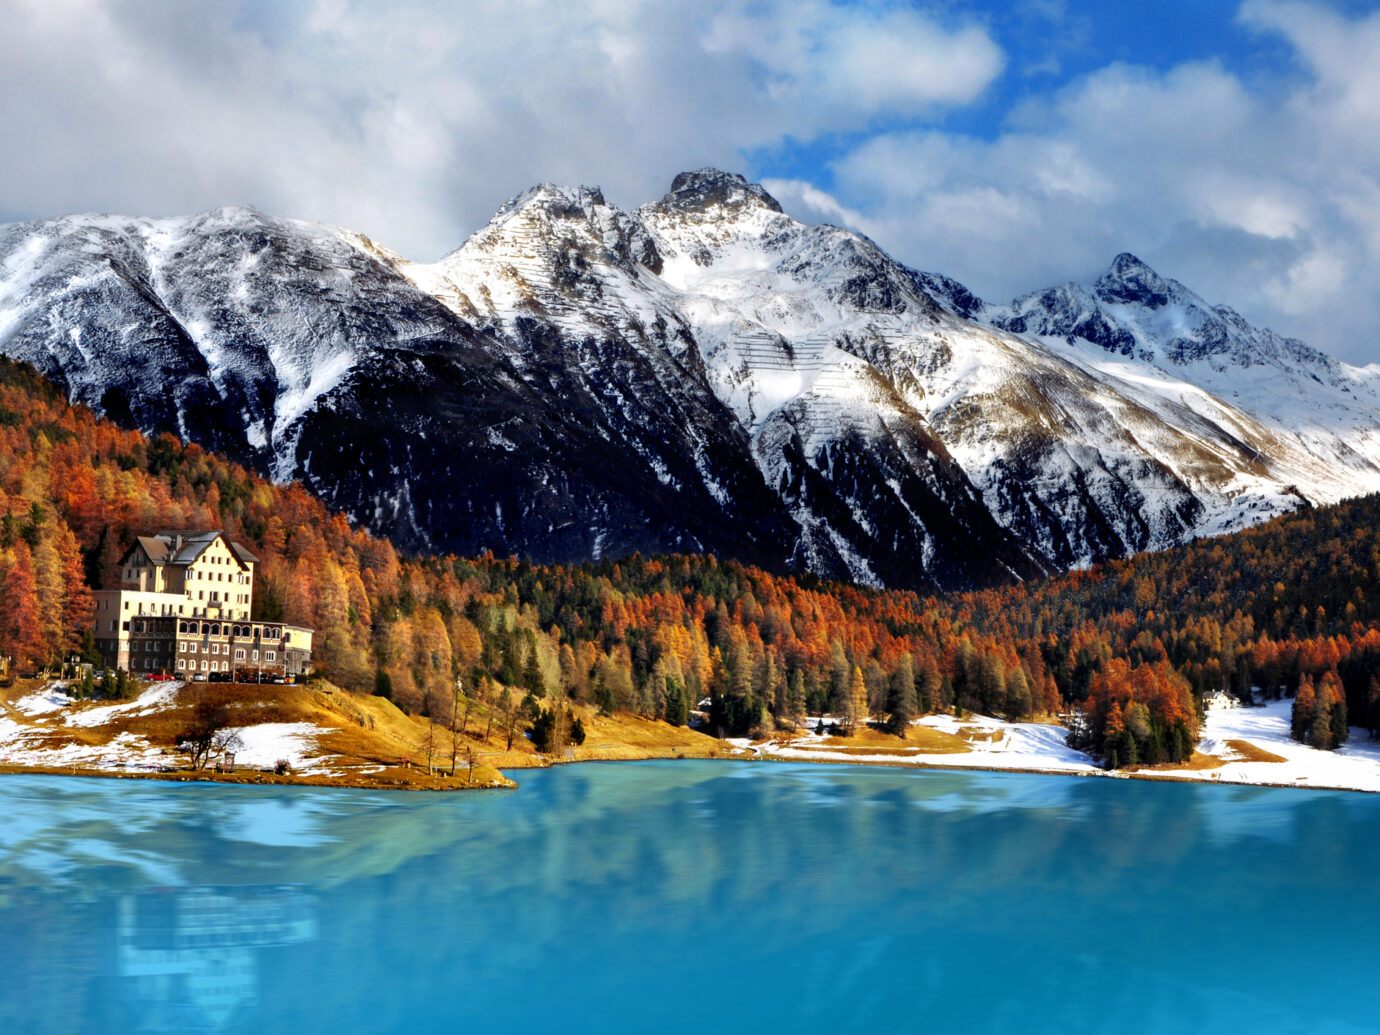 Idyllic lake surrounded by colorful trees in the Swiss Alps. St. Moritz.